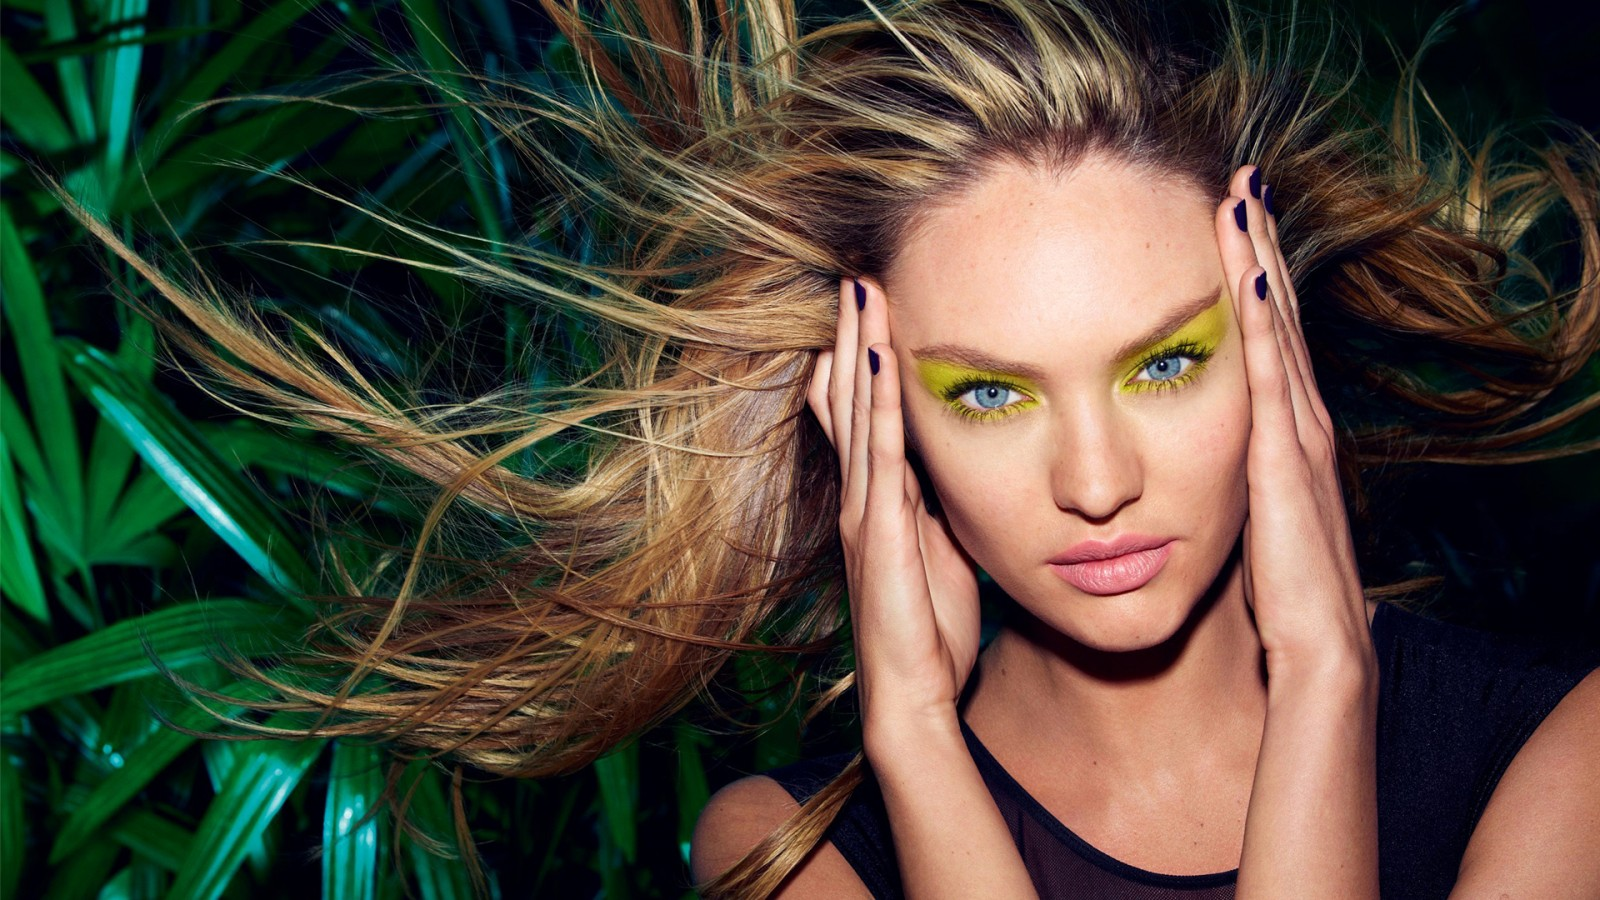 Kendall Jenner Iphone Wallpaper Candice Swanepoel 2014 Wallpapers Hd Wallpapers Id 14086